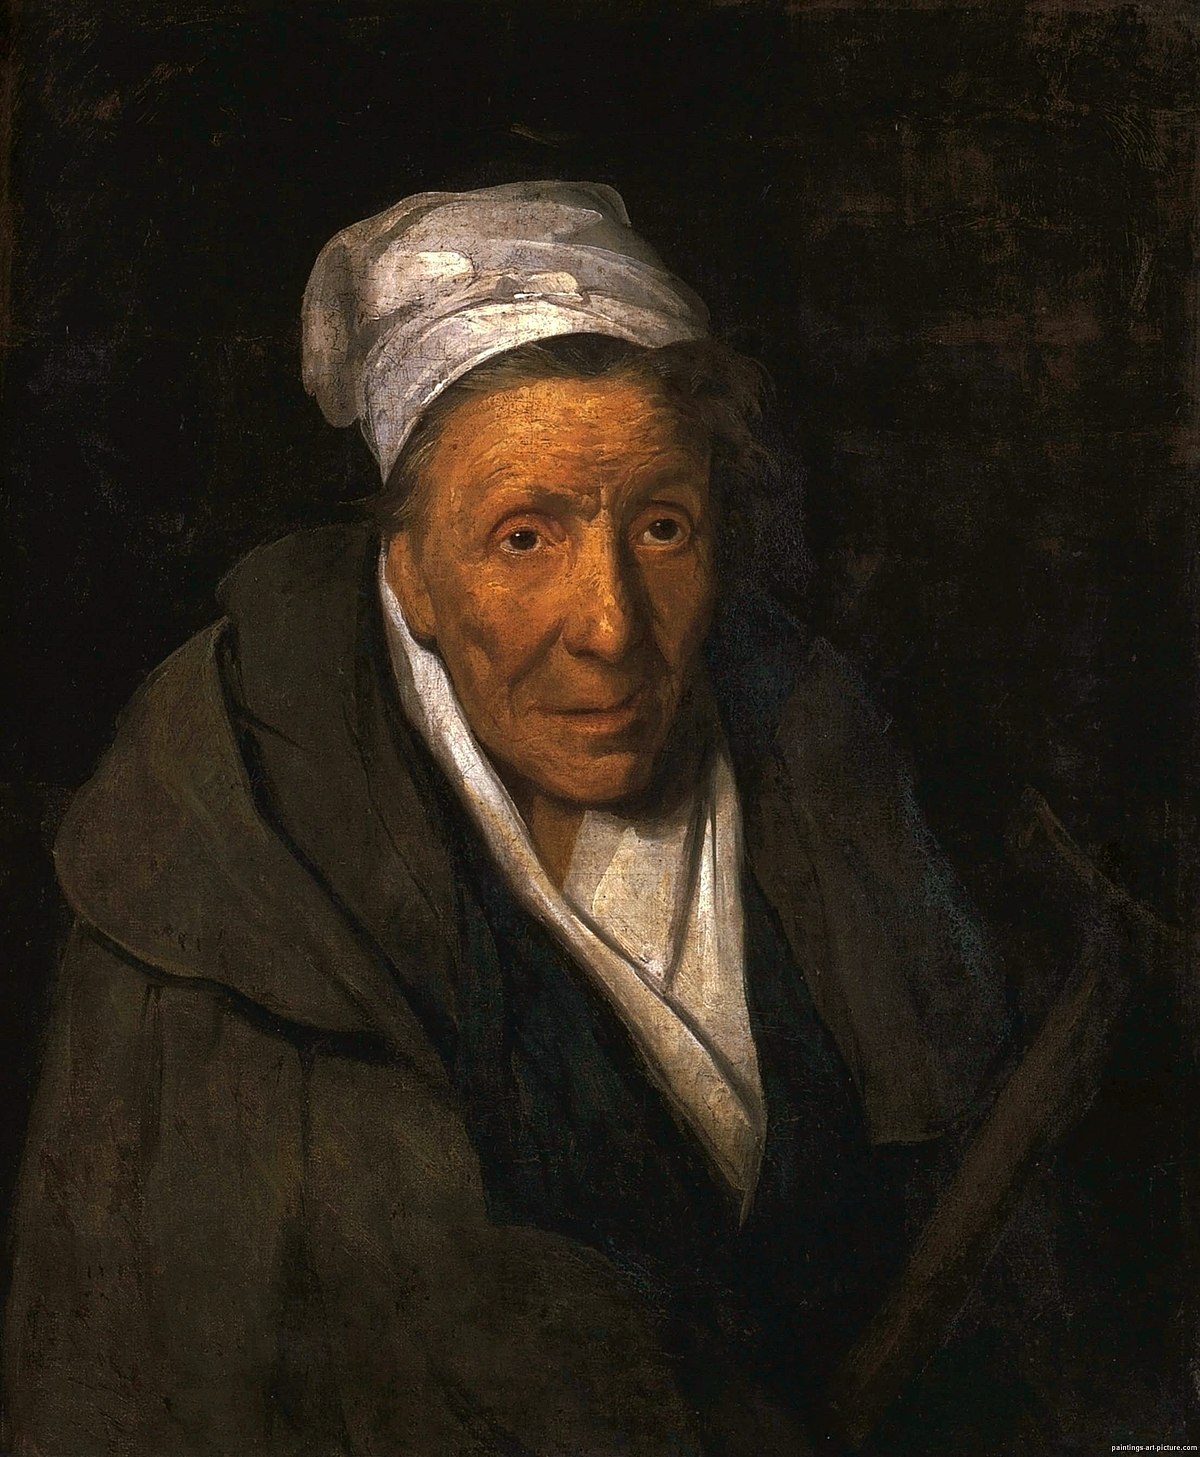 The Woman with a Gambling Mania - Wikipedia Theodore Géricault